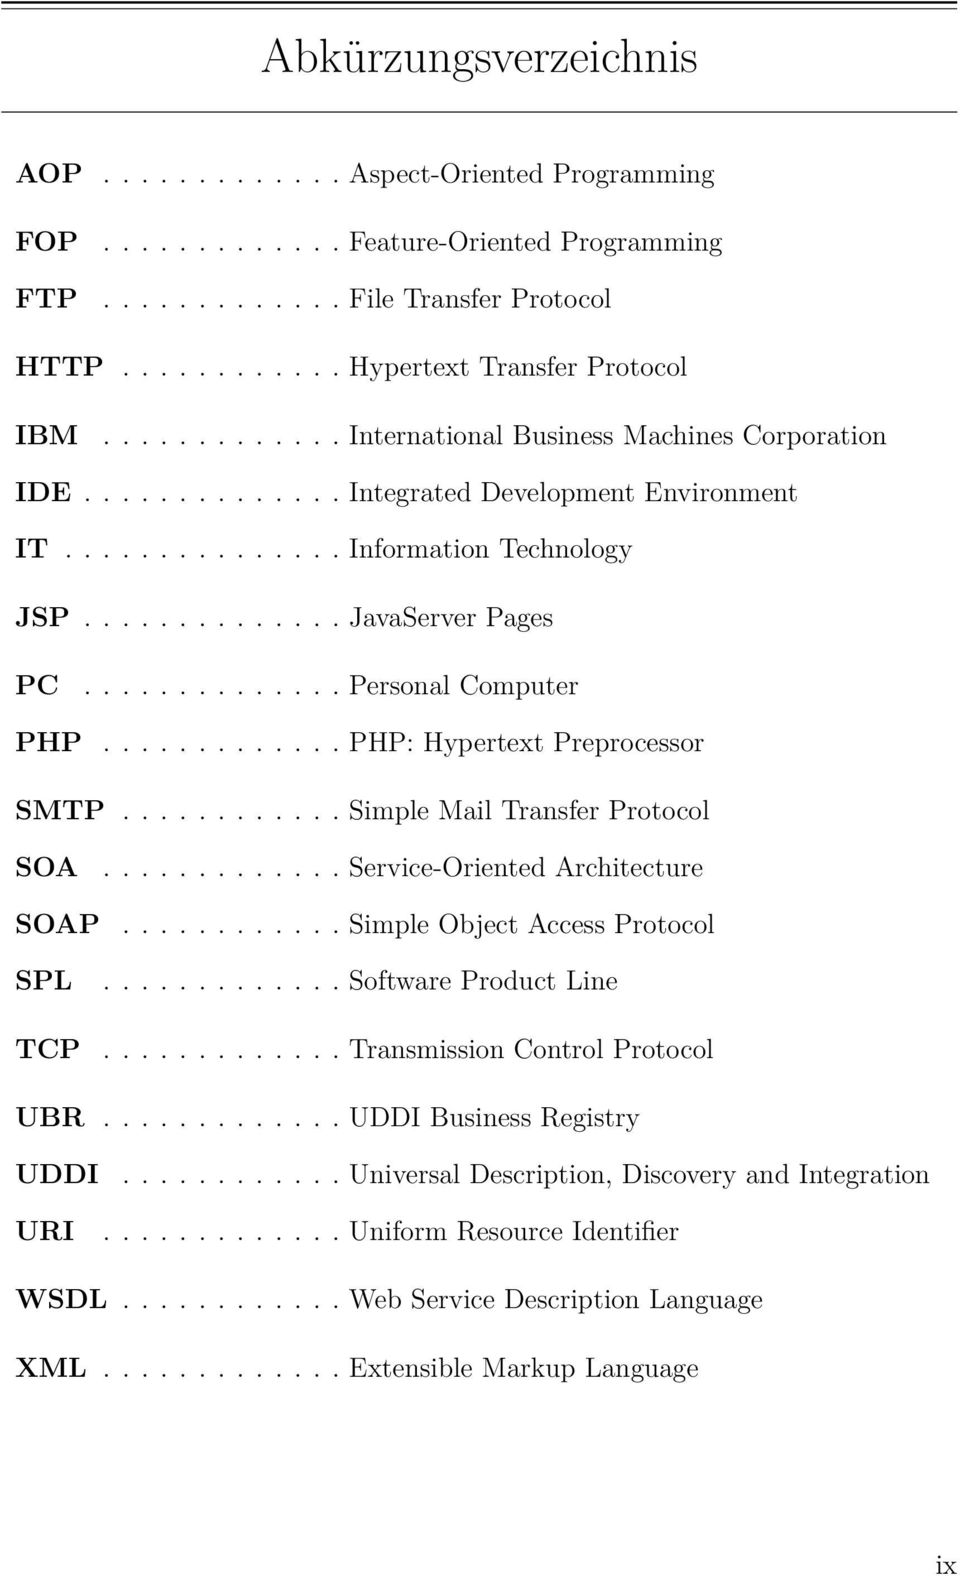 ............. Personal Computer PHP............. PHP: Hypertext Preprocessor SMTP............ Simple Mail Transfer Protocol SOA SOAP SPL TCP............. Service-Oriented Architecture.